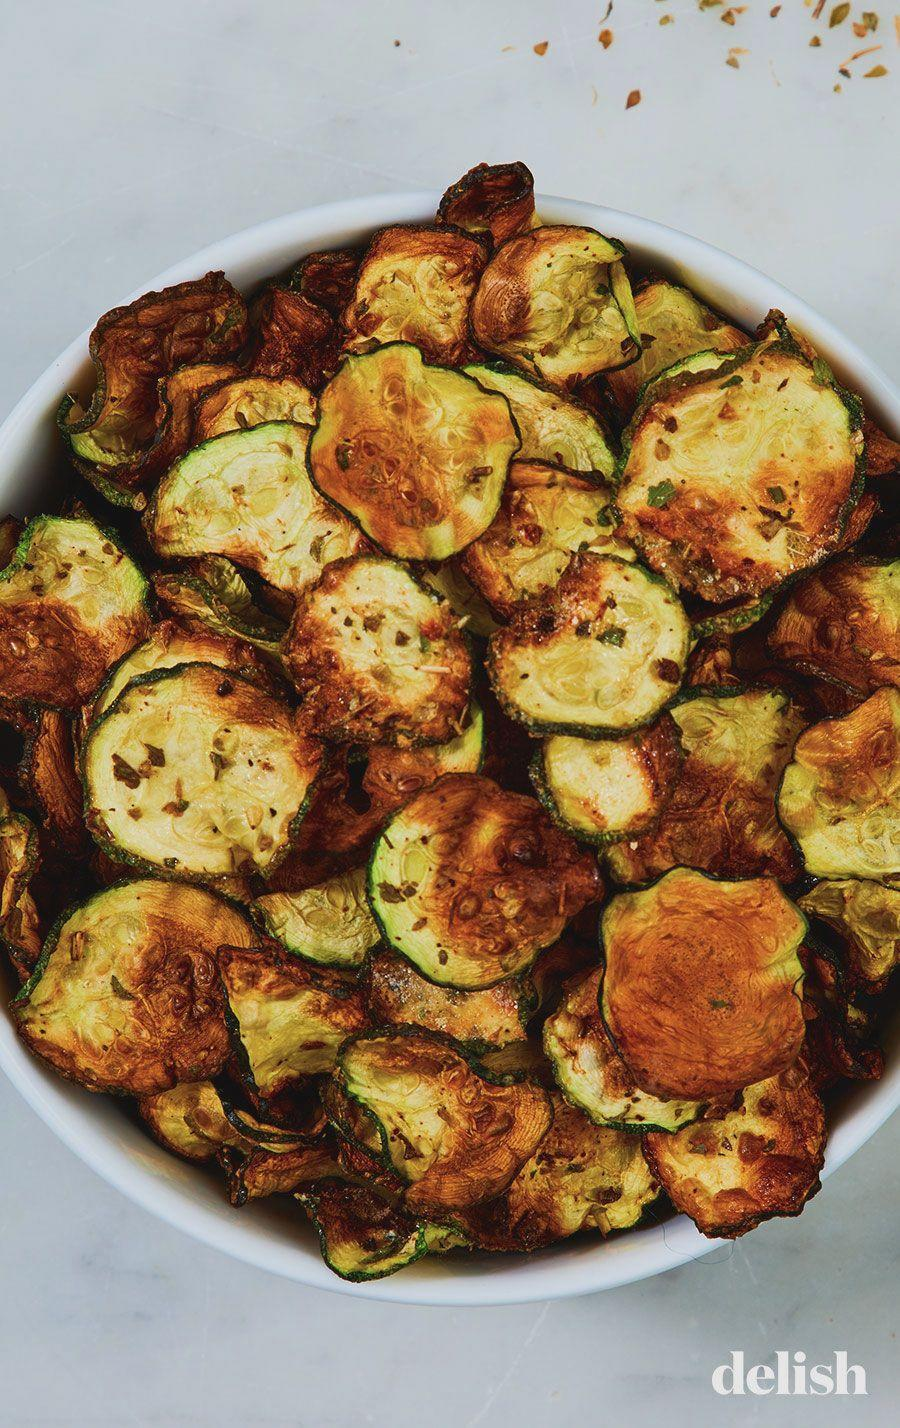 """<p>Like Doritos, but without all the post-snack guilt. </p><p>Get the recipe from <a href=""""https://www.delish.com/cooking/recipe-ideas/a22344312/cool-ranch-zucchini-chips/"""" rel=""""nofollow noopener"""" target=""""_blank"""" data-ylk=""""slk:Delish"""" class=""""link rapid-noclick-resp"""">Delish</a>.</p>"""